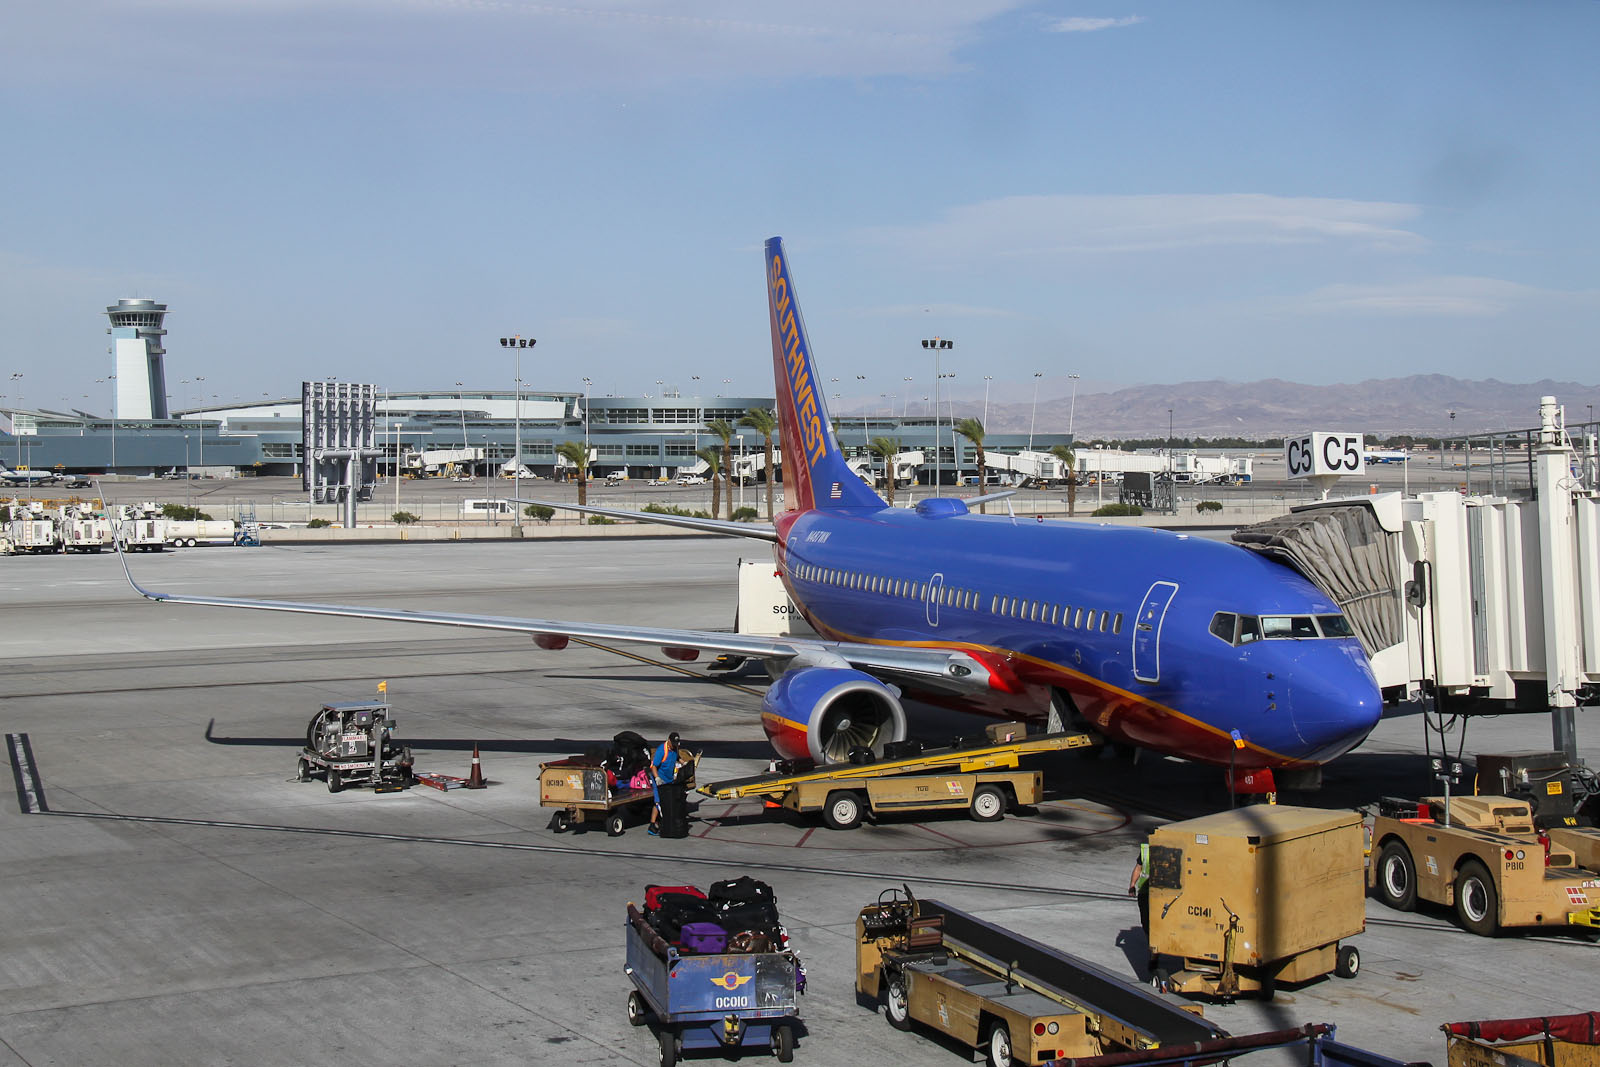 Southwest Boeing 737 at Las Vegas airport